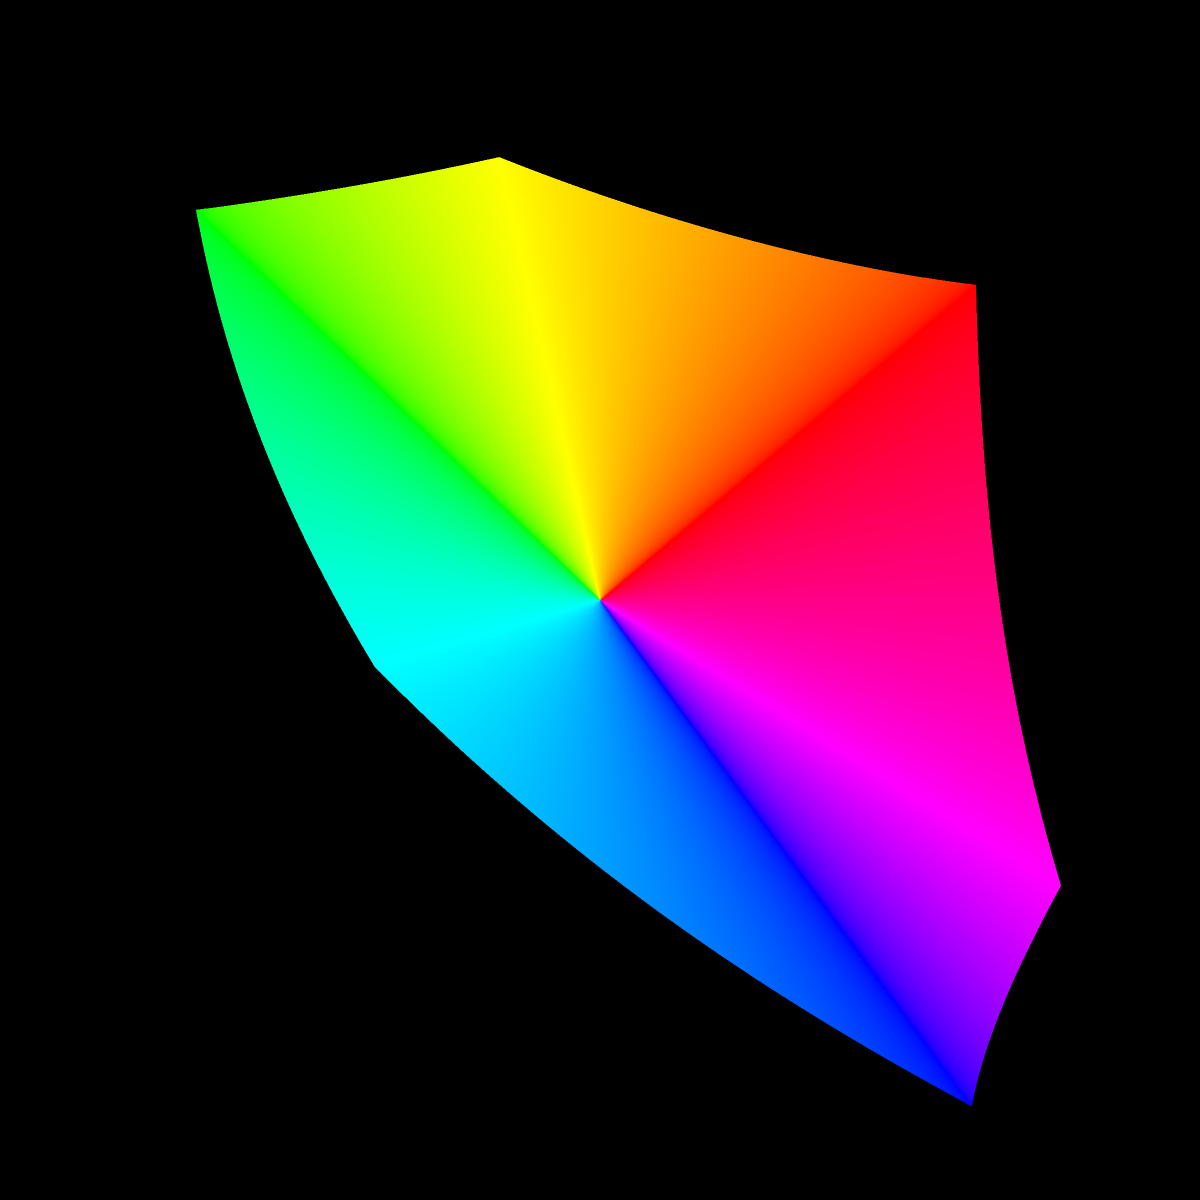 saturated rgb colors projected to the ab plane of the cie lab color space